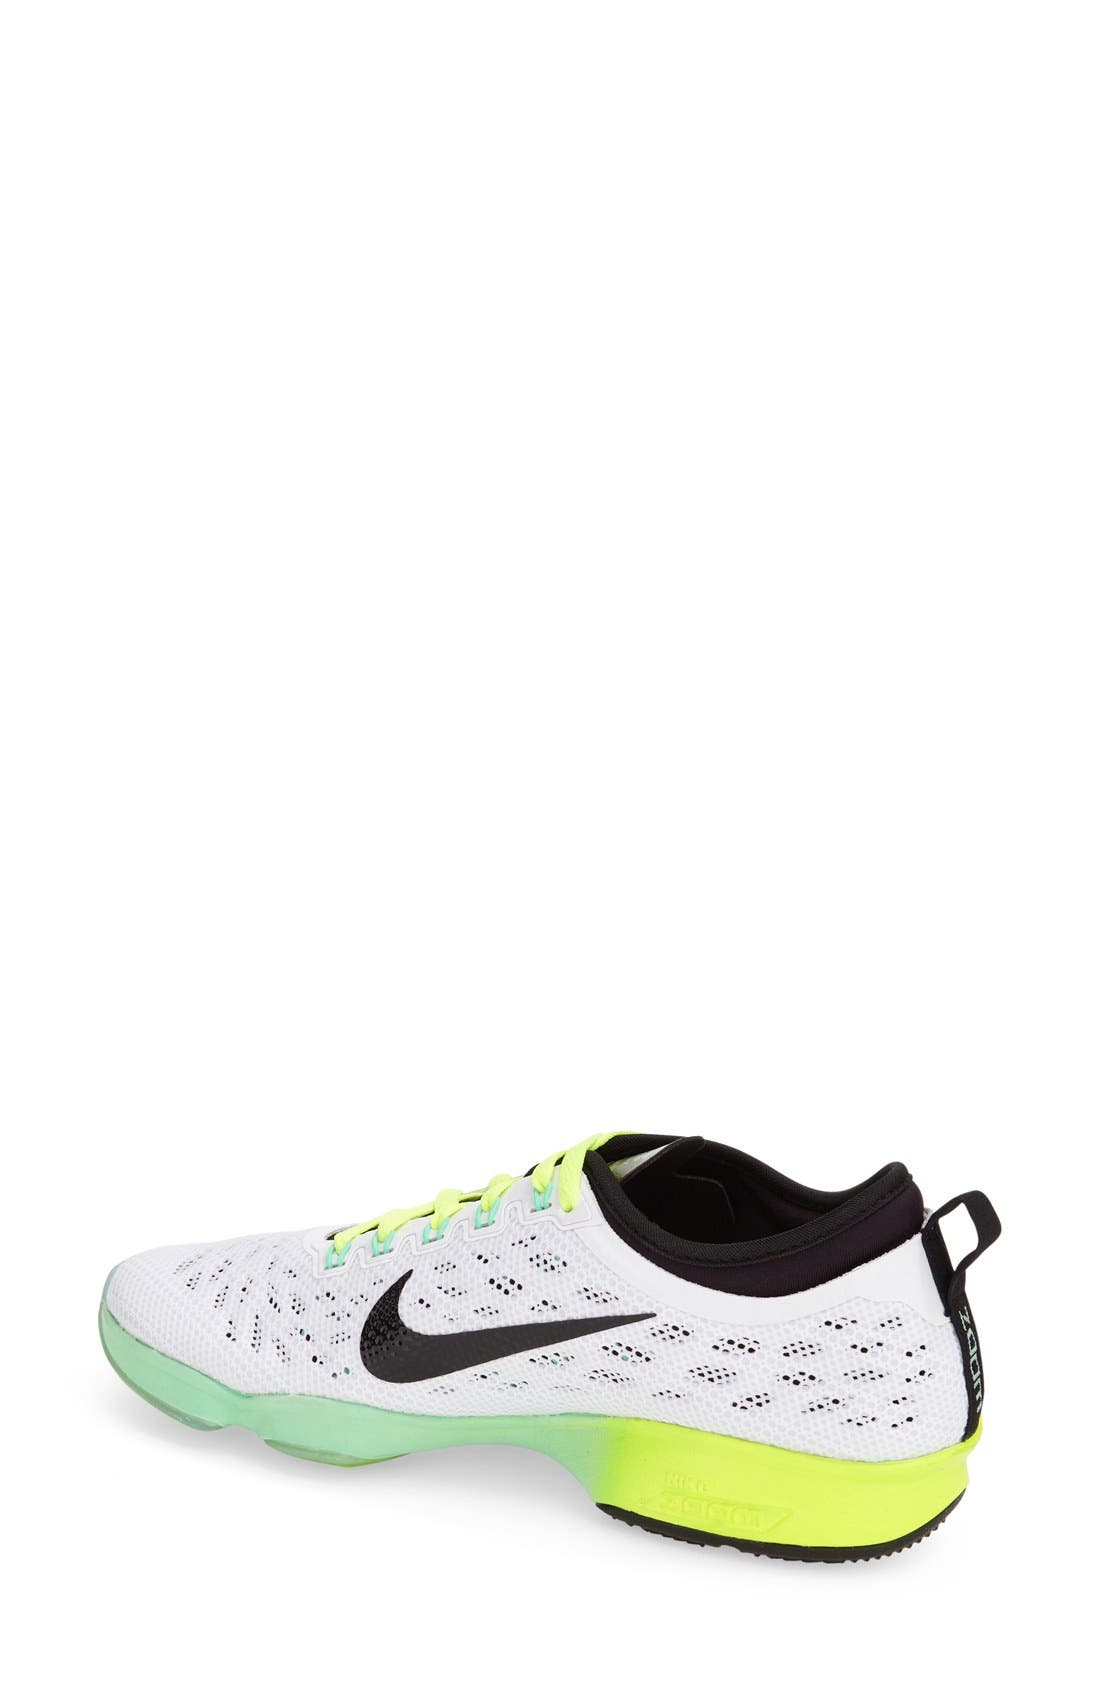 Alternate Image 2  - Nike 'Zoom Fit Agility' Training Shoe (Women)